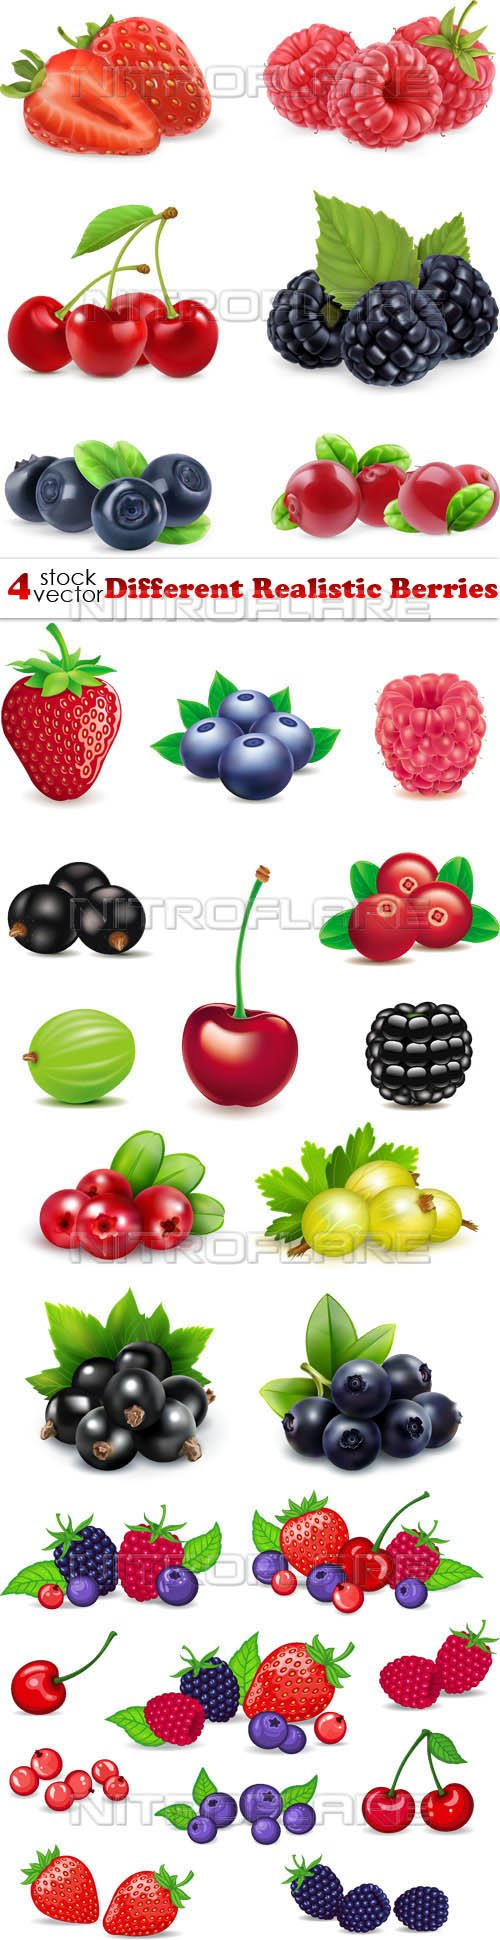 Vectors - Different Realistic Berries